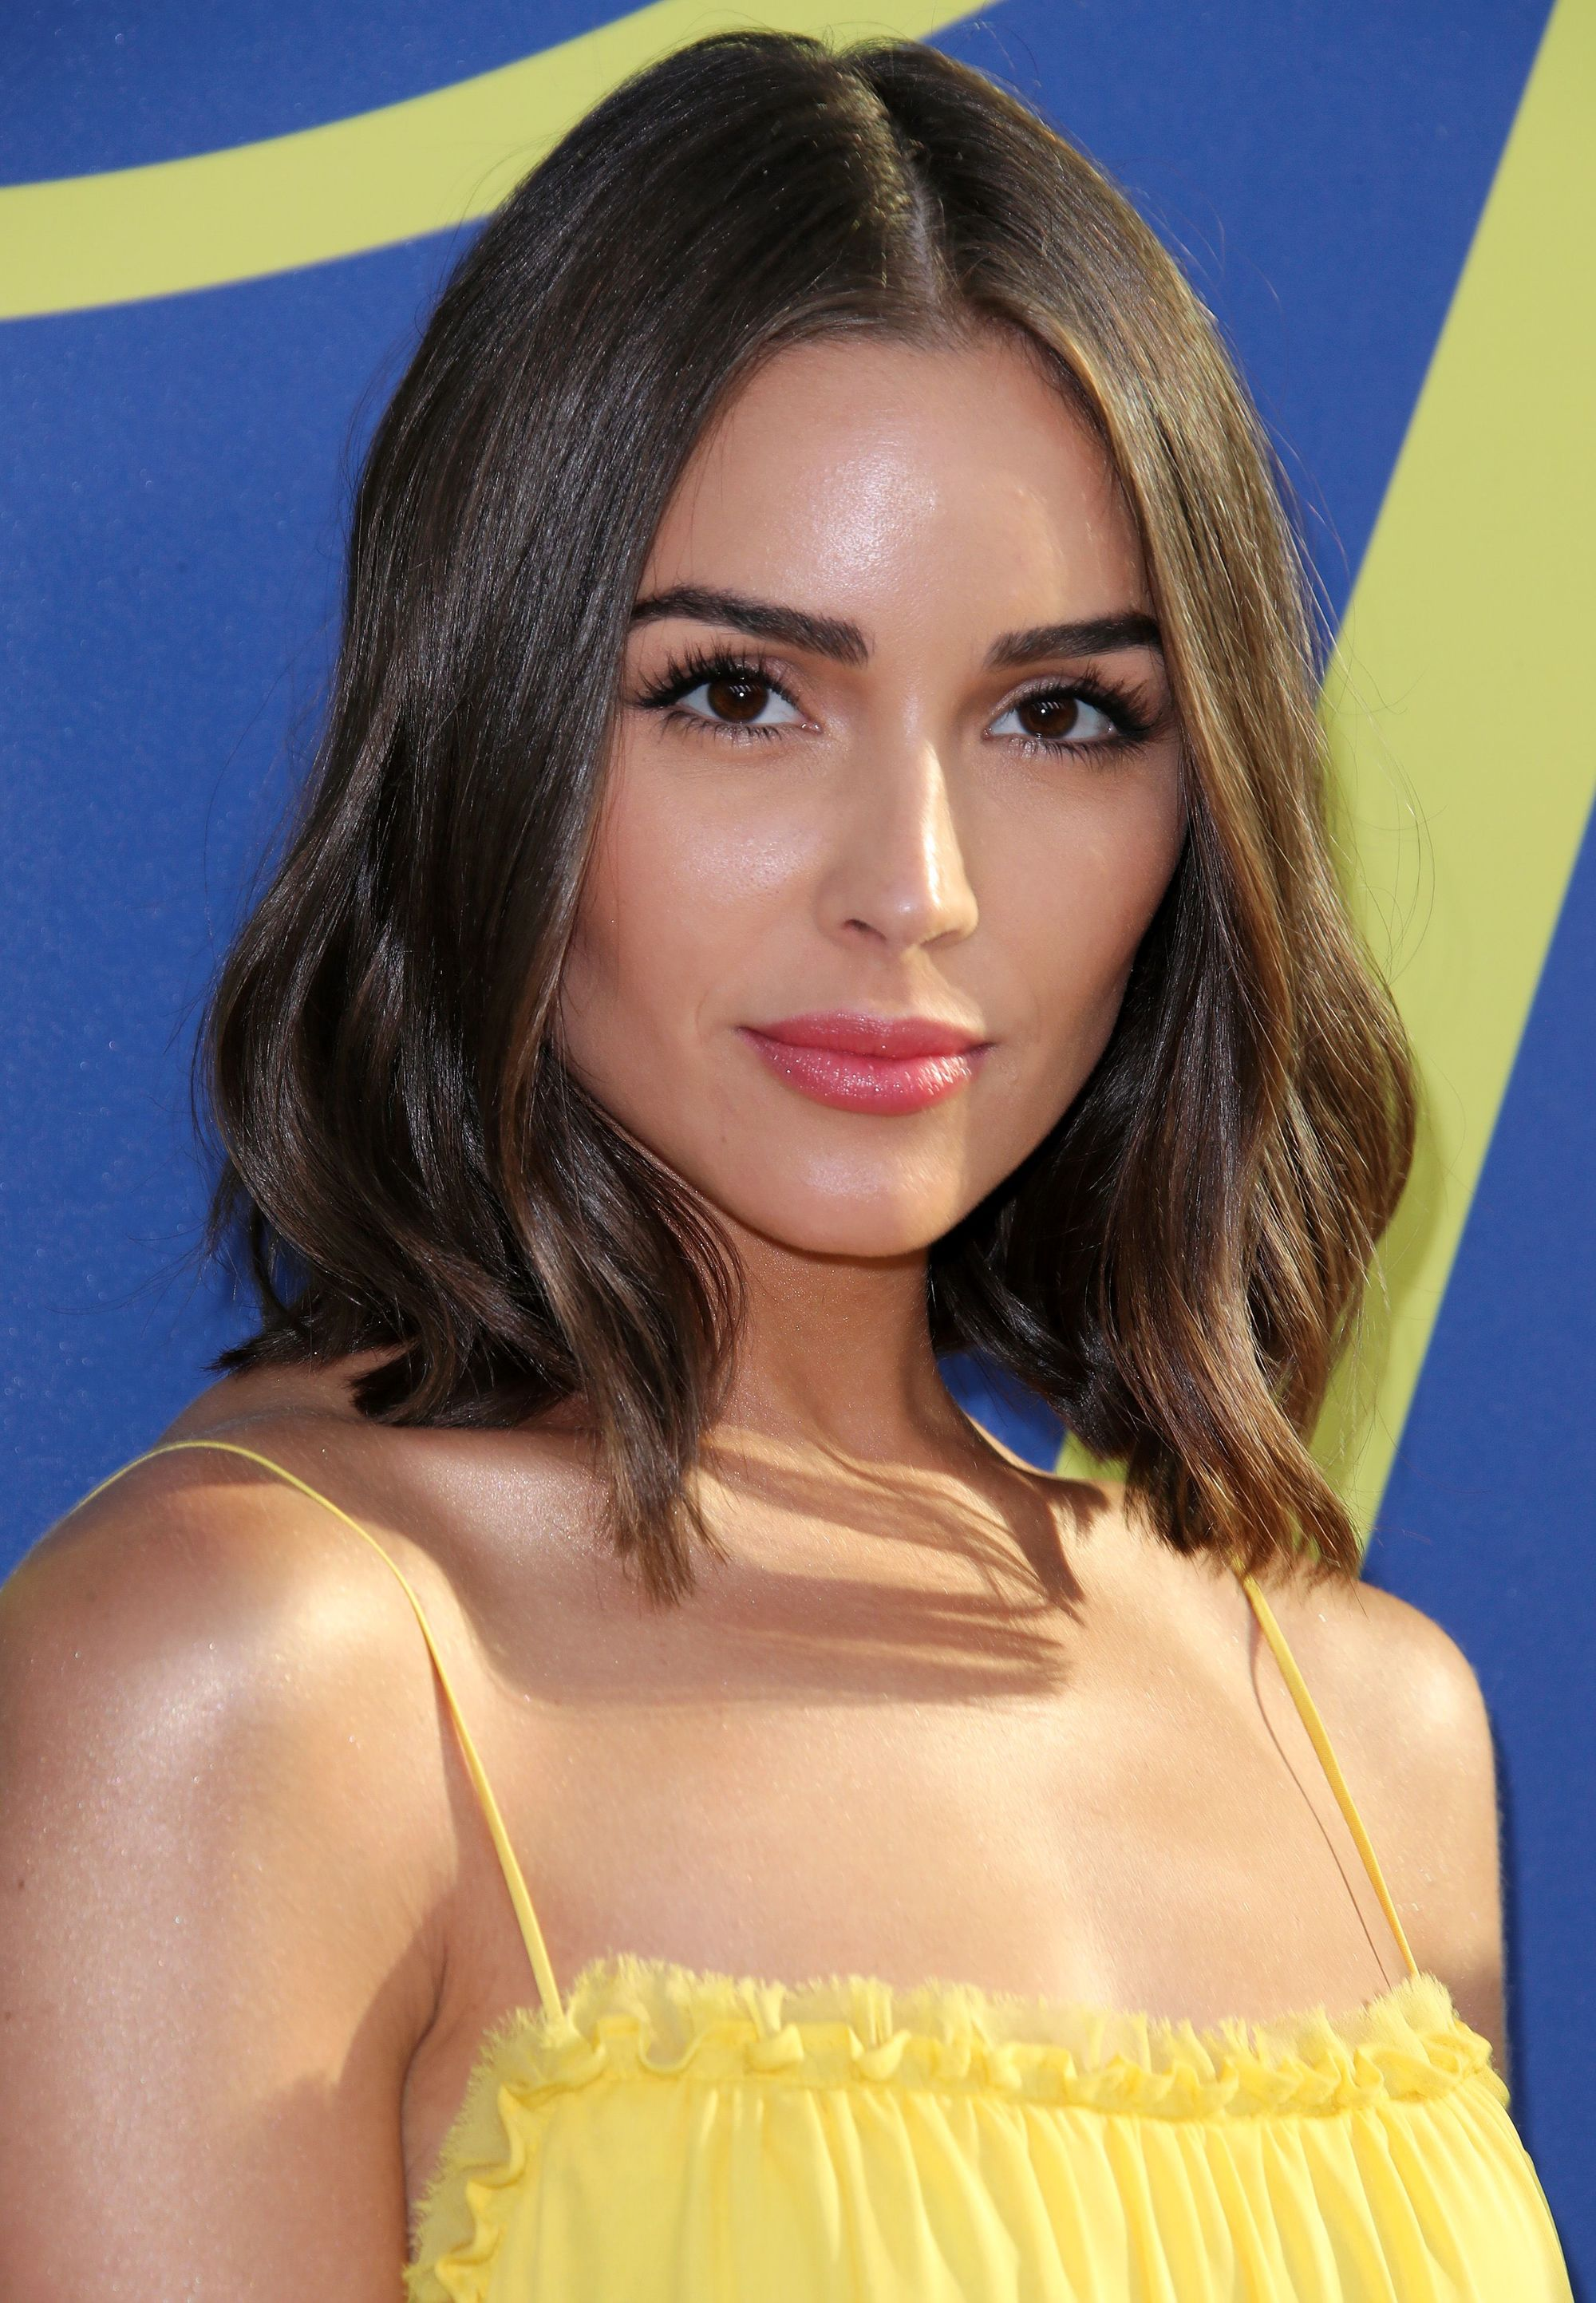 Olivia Culpo on the red carpet with long bob cut length chestnut wavy hair, wearing a yellow top